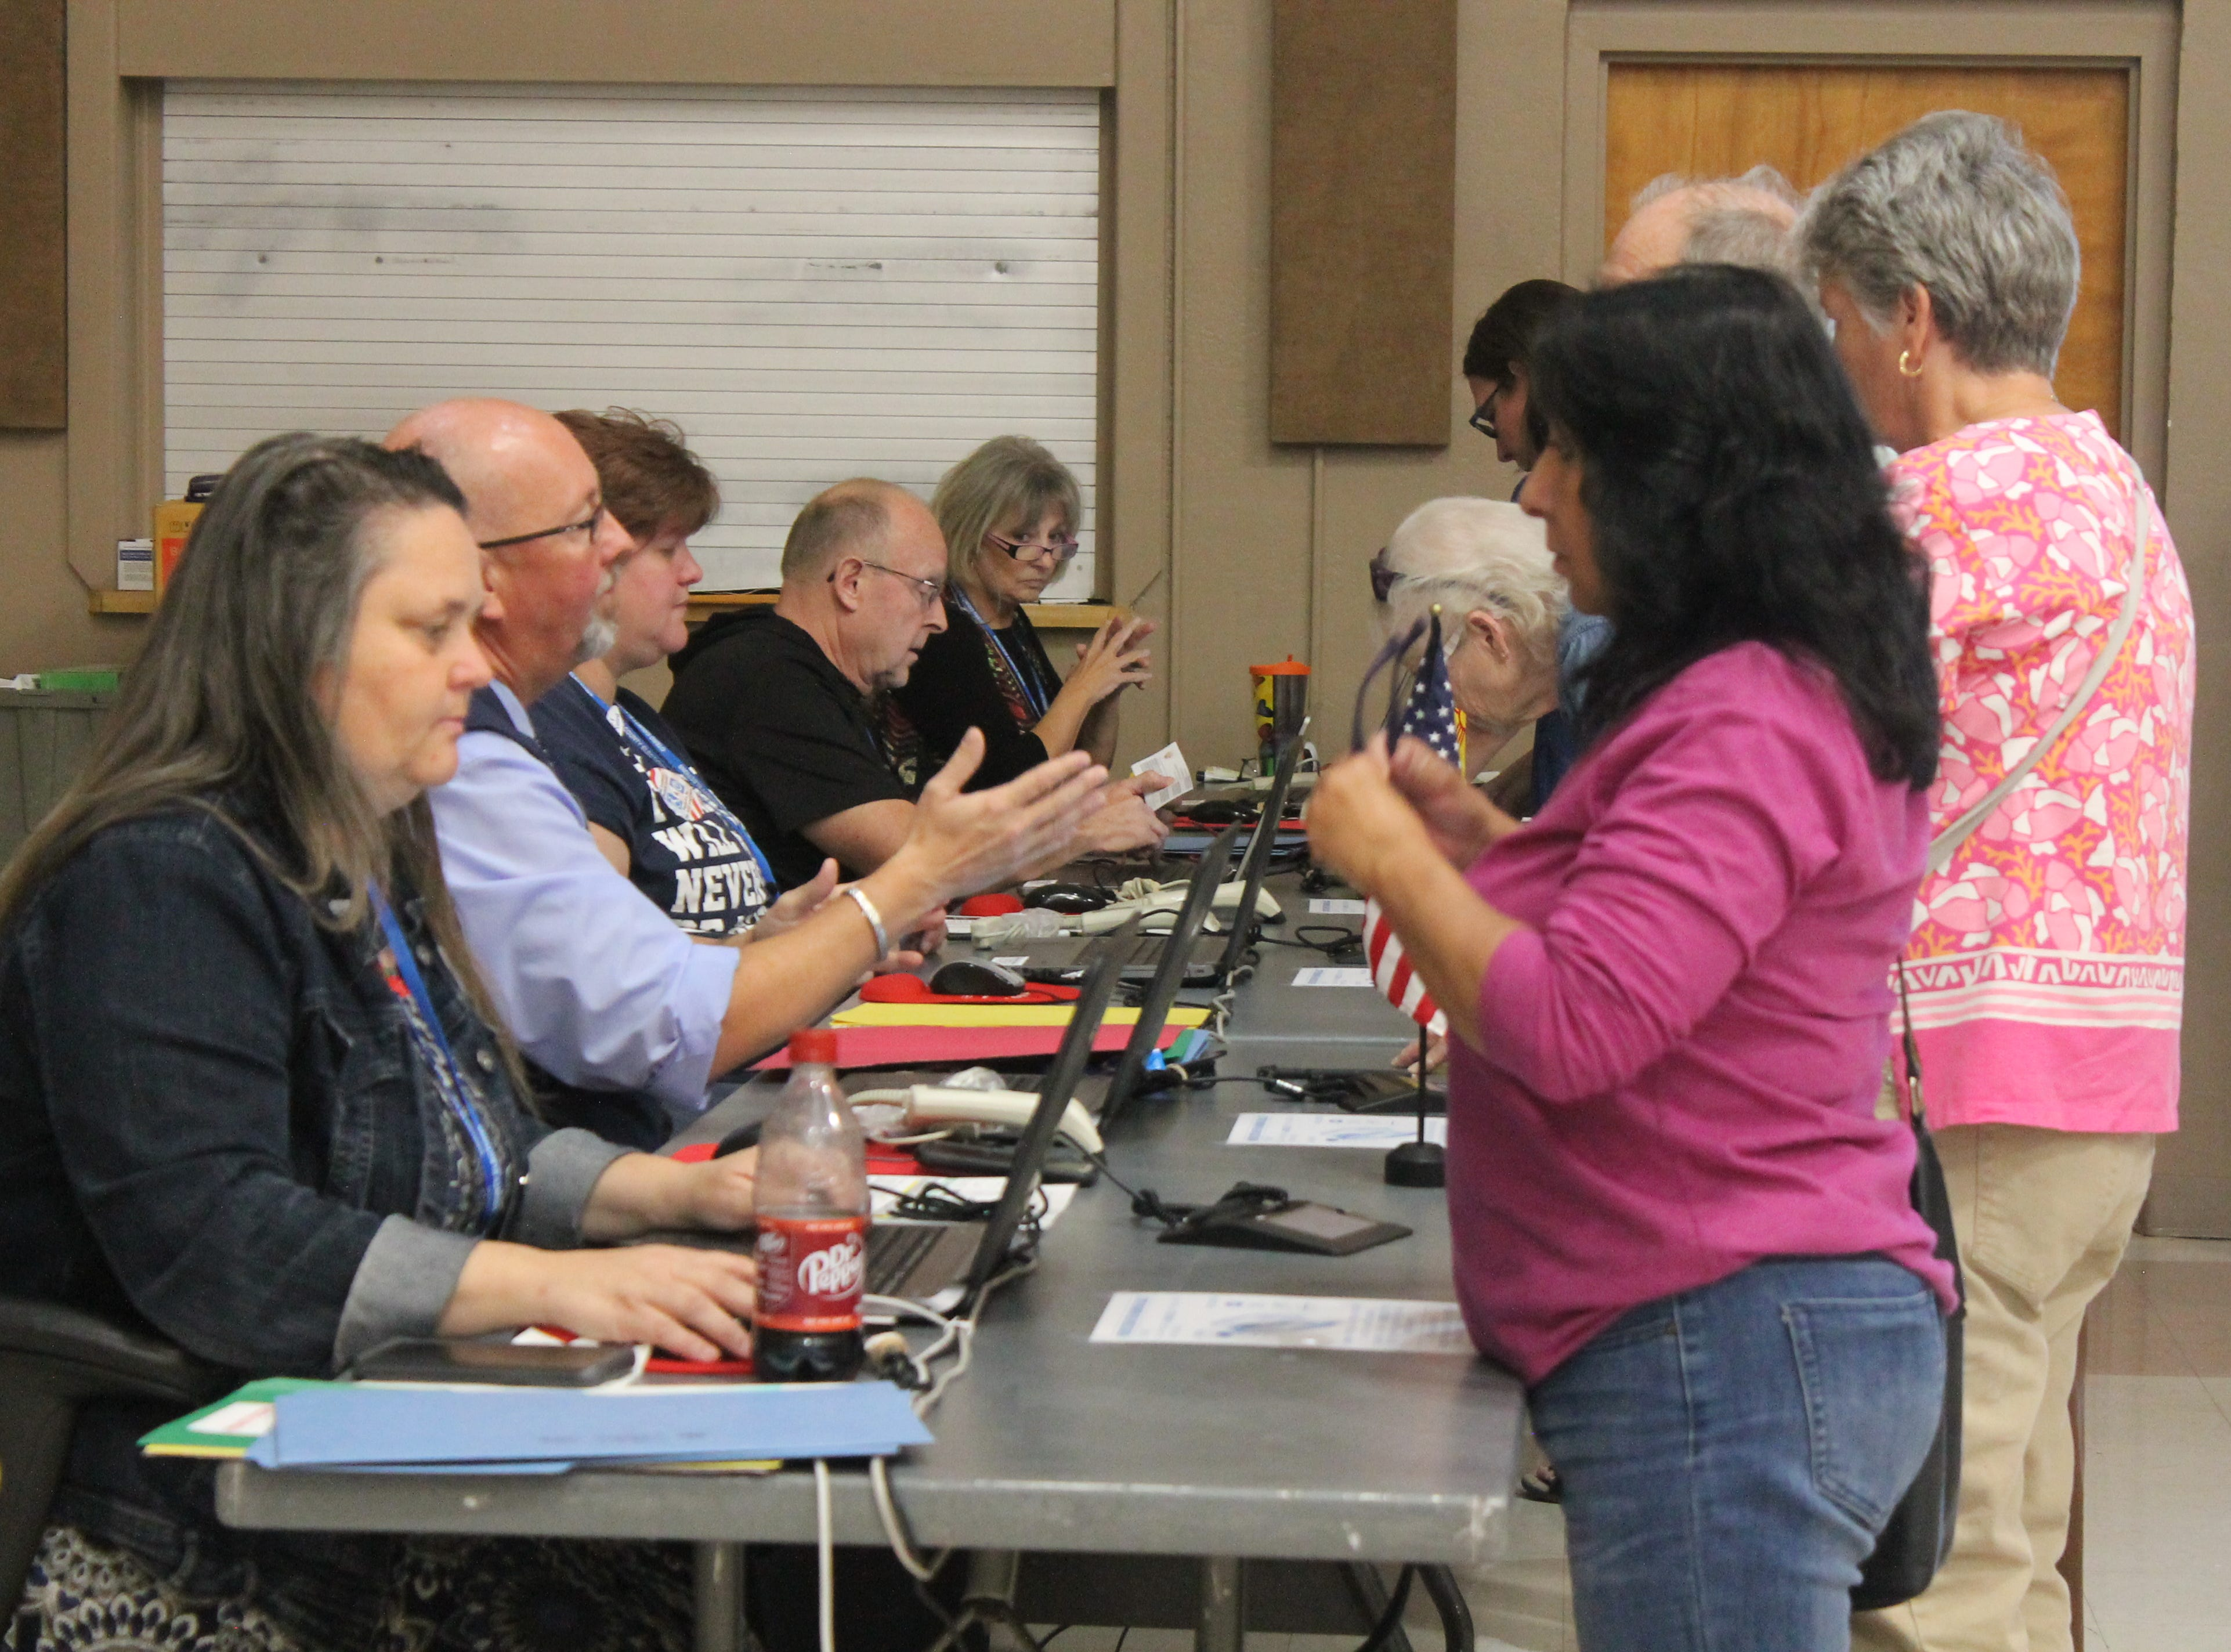 Over 800 people had voted at the Willie Estrada Memorial Civic Center by 2 p.m. on Election Day, election judge Jean Branch said. The poll workers have stayed busy all day, she said.